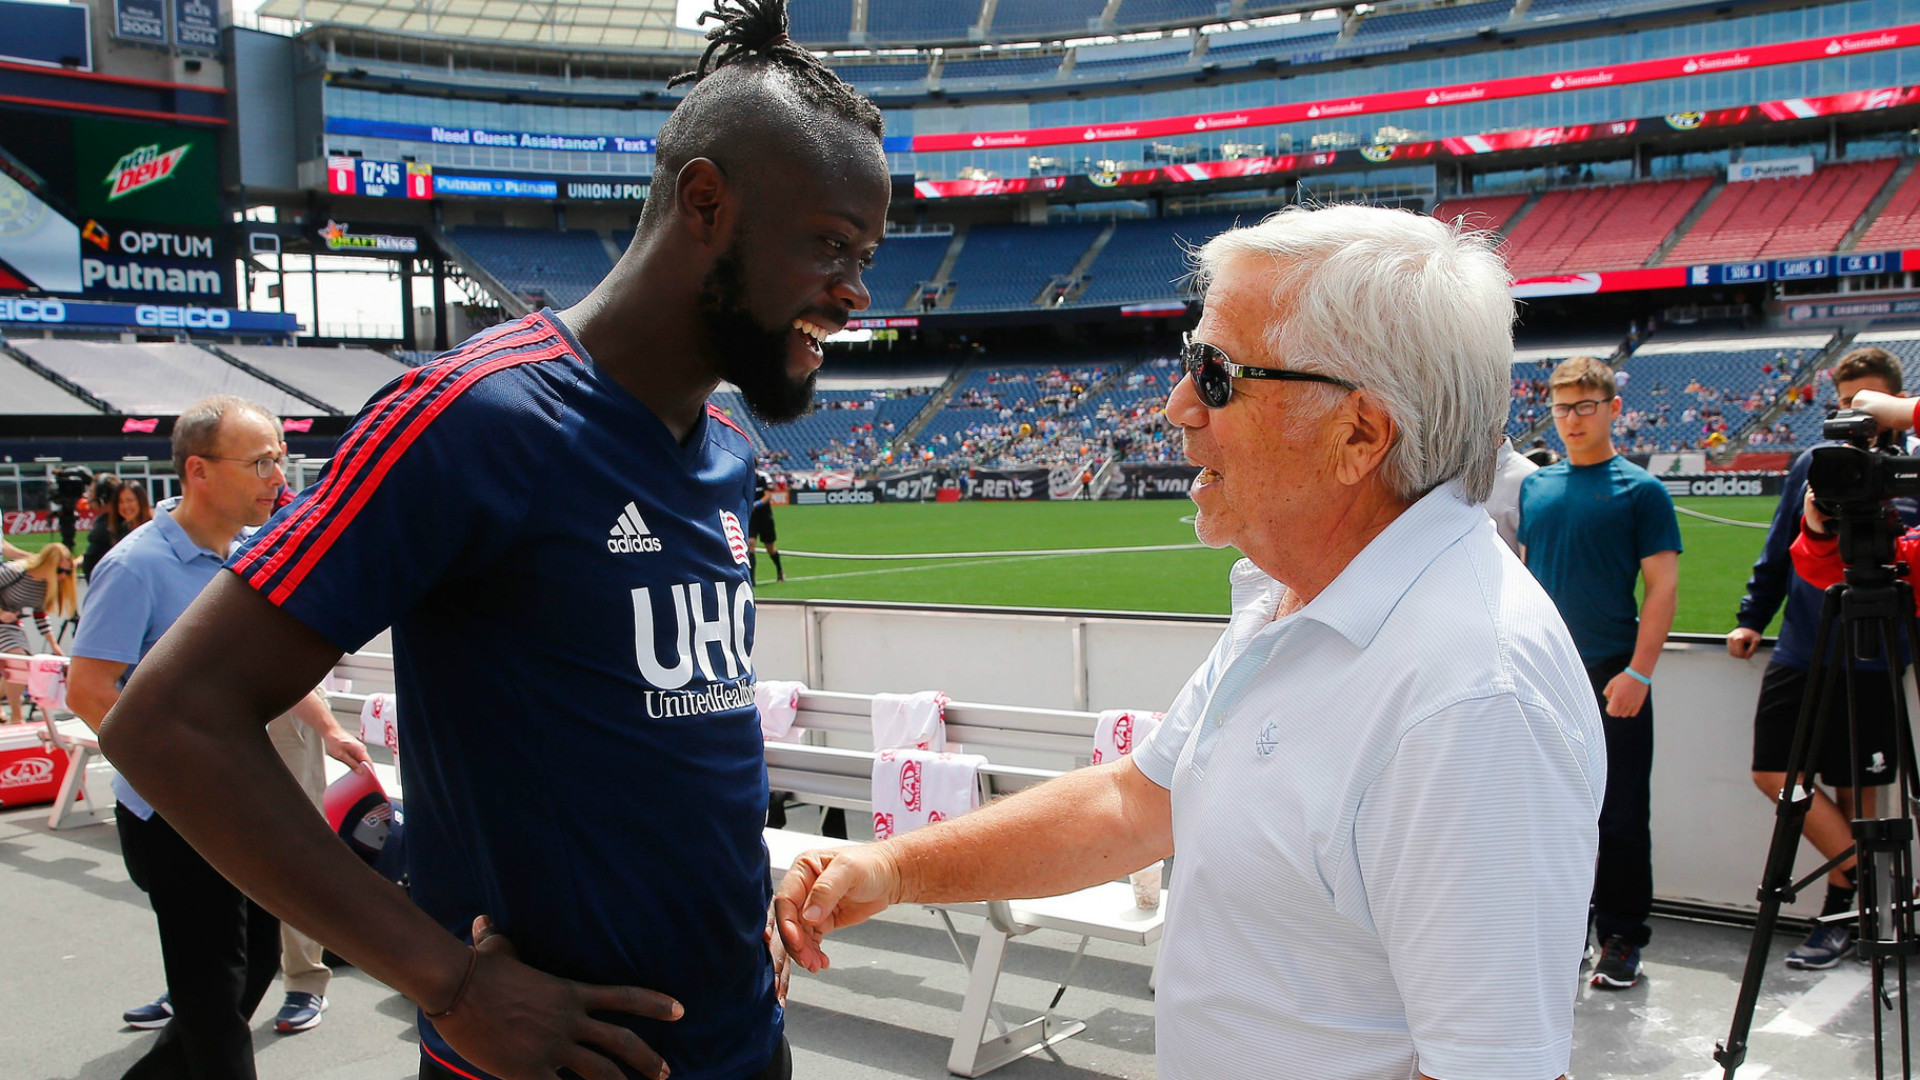 Kei Kamara MLS New England Revolution 05212017